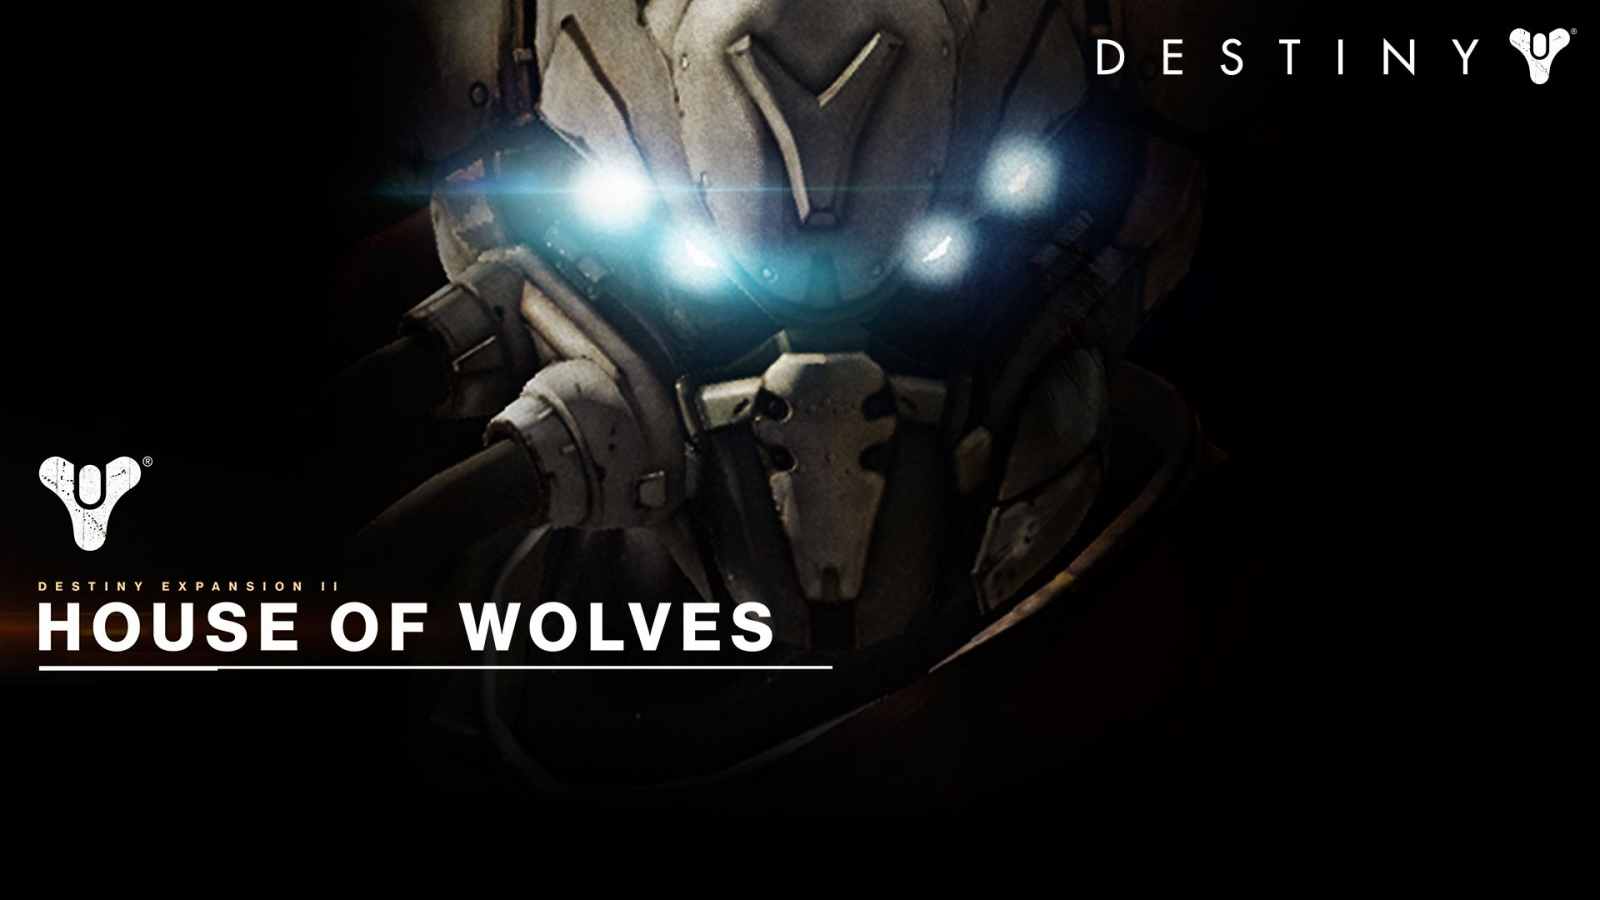 Free Download Destiny House Of Wolves 1920x1080 For Your Desktop